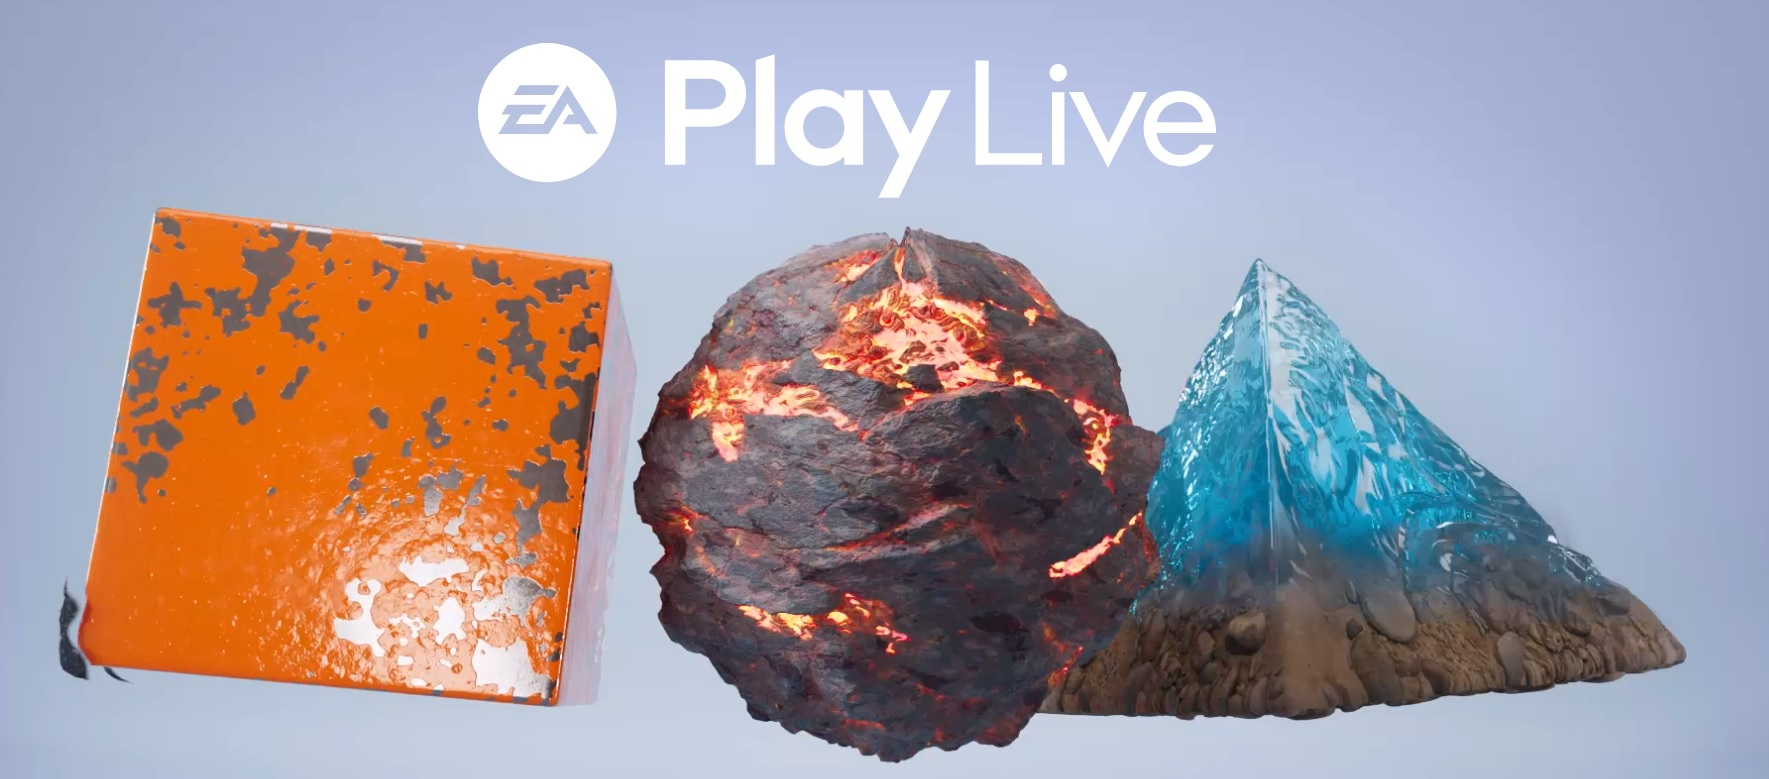 EA Play 2021: Live stream for the game show today - with Battlefield 2042 and FIFA 22